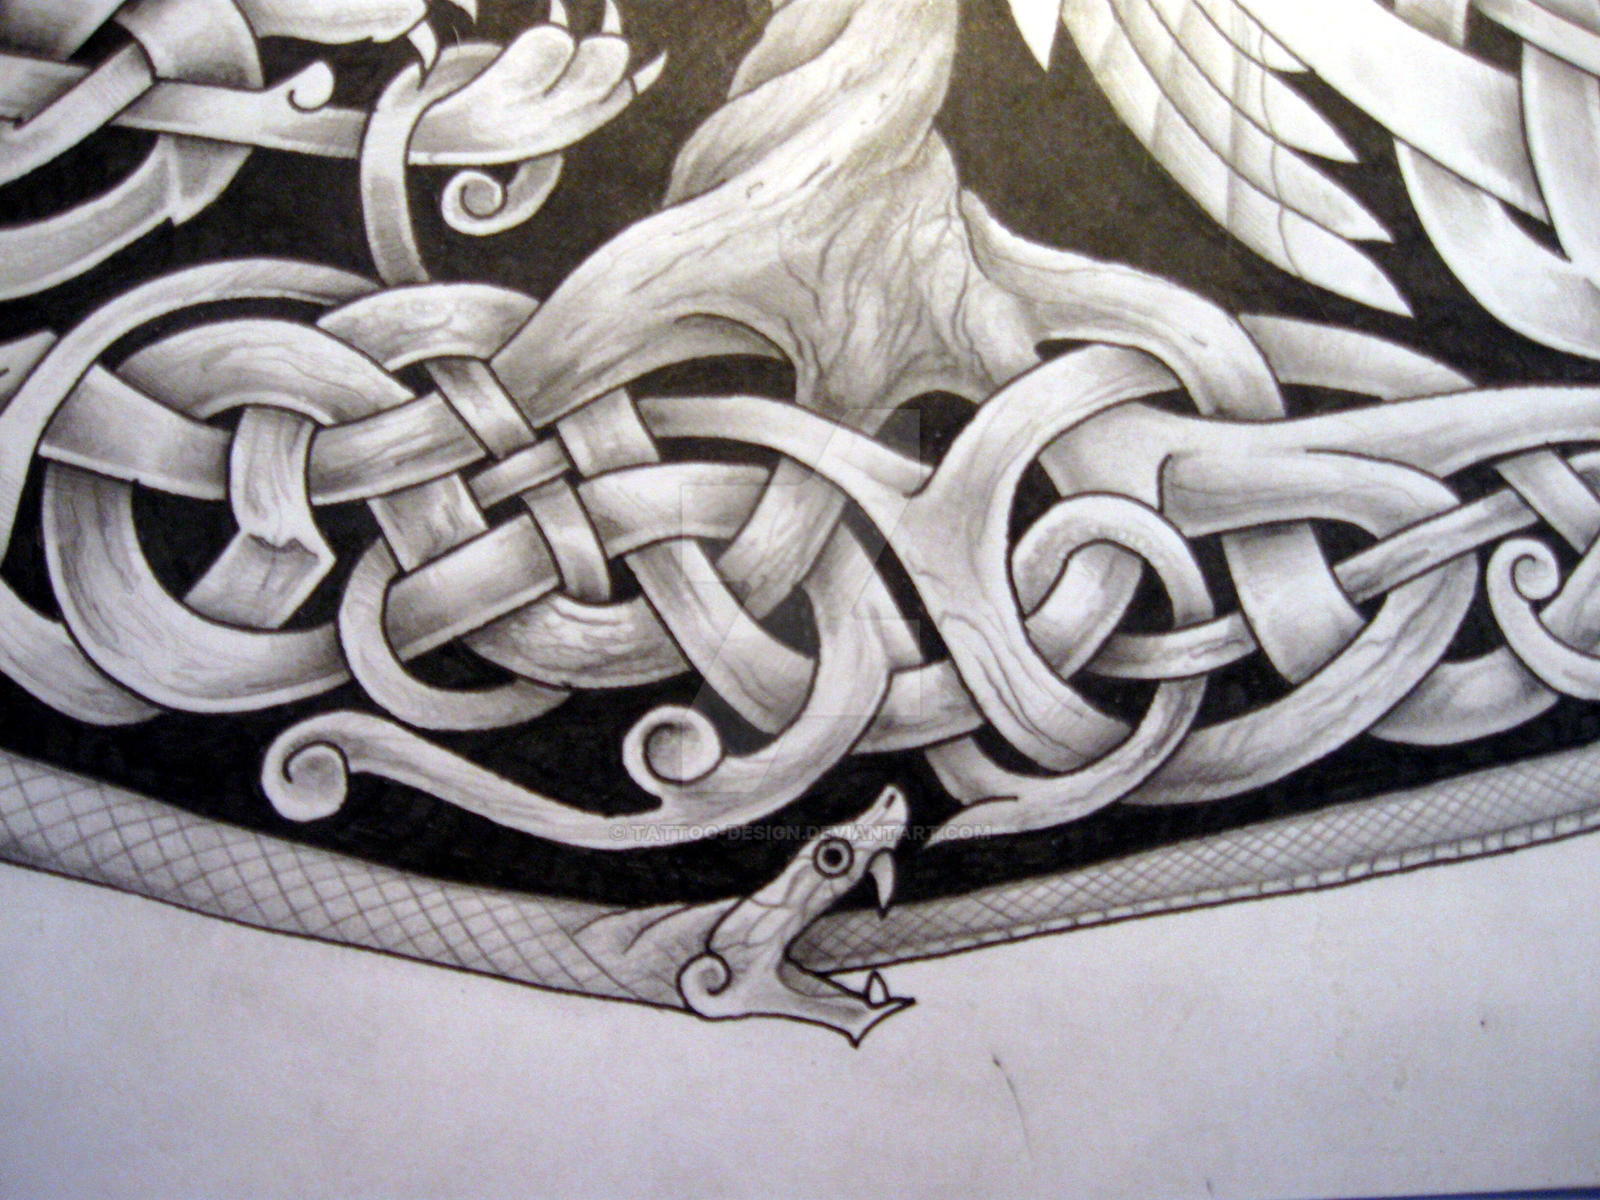 the gallery for norwegian viking tattoo designs. Black Bedroom Furniture Sets. Home Design Ideas